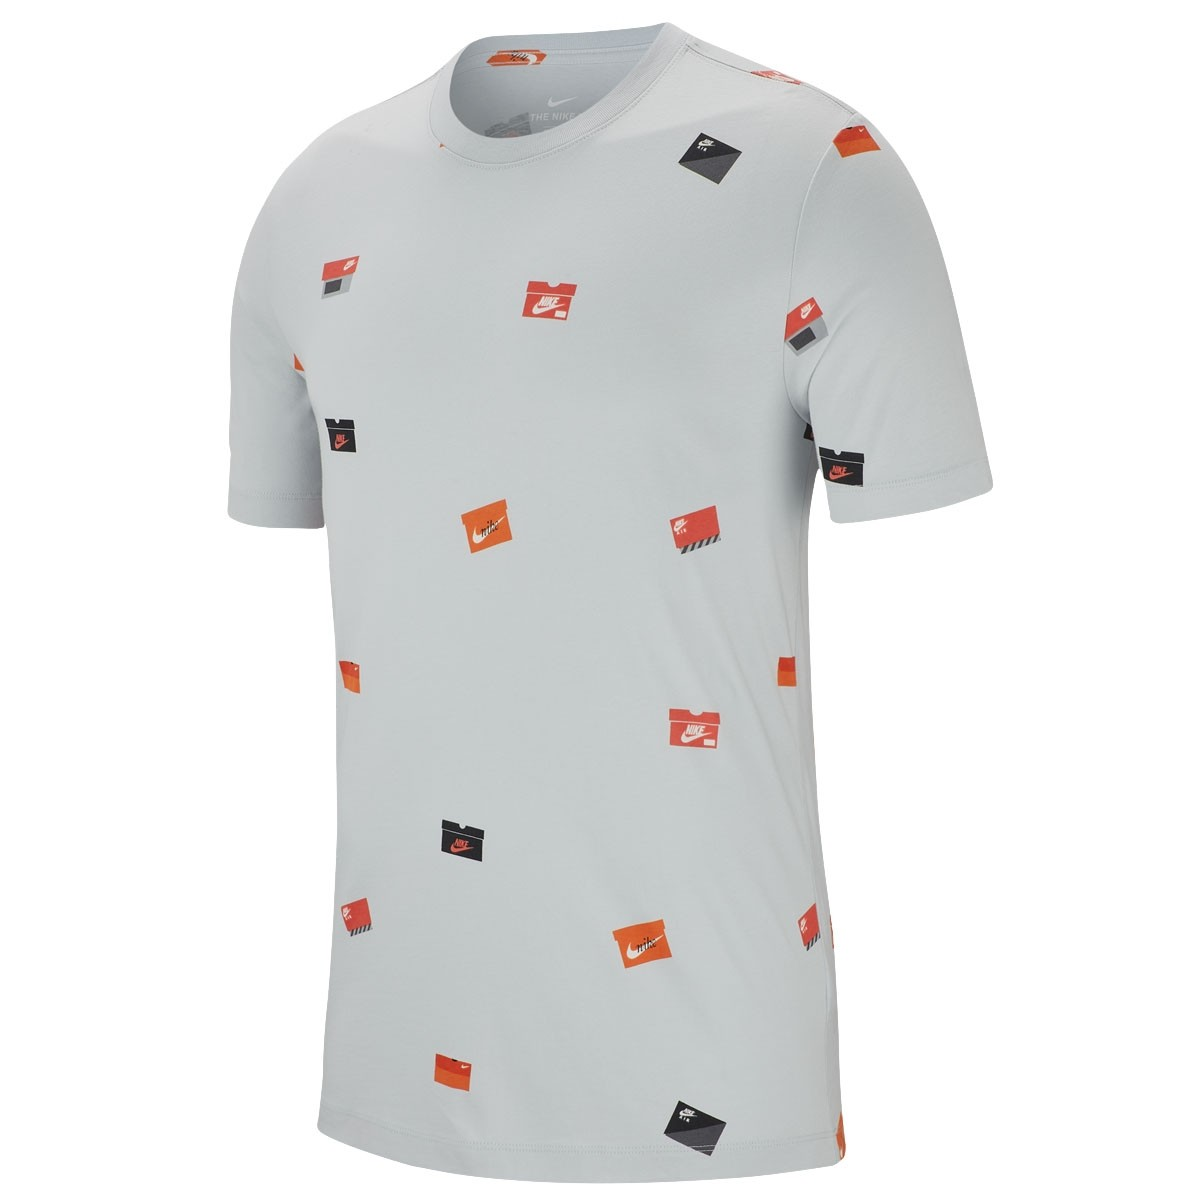 Nike Shoe Box T-shirt 'Grey'